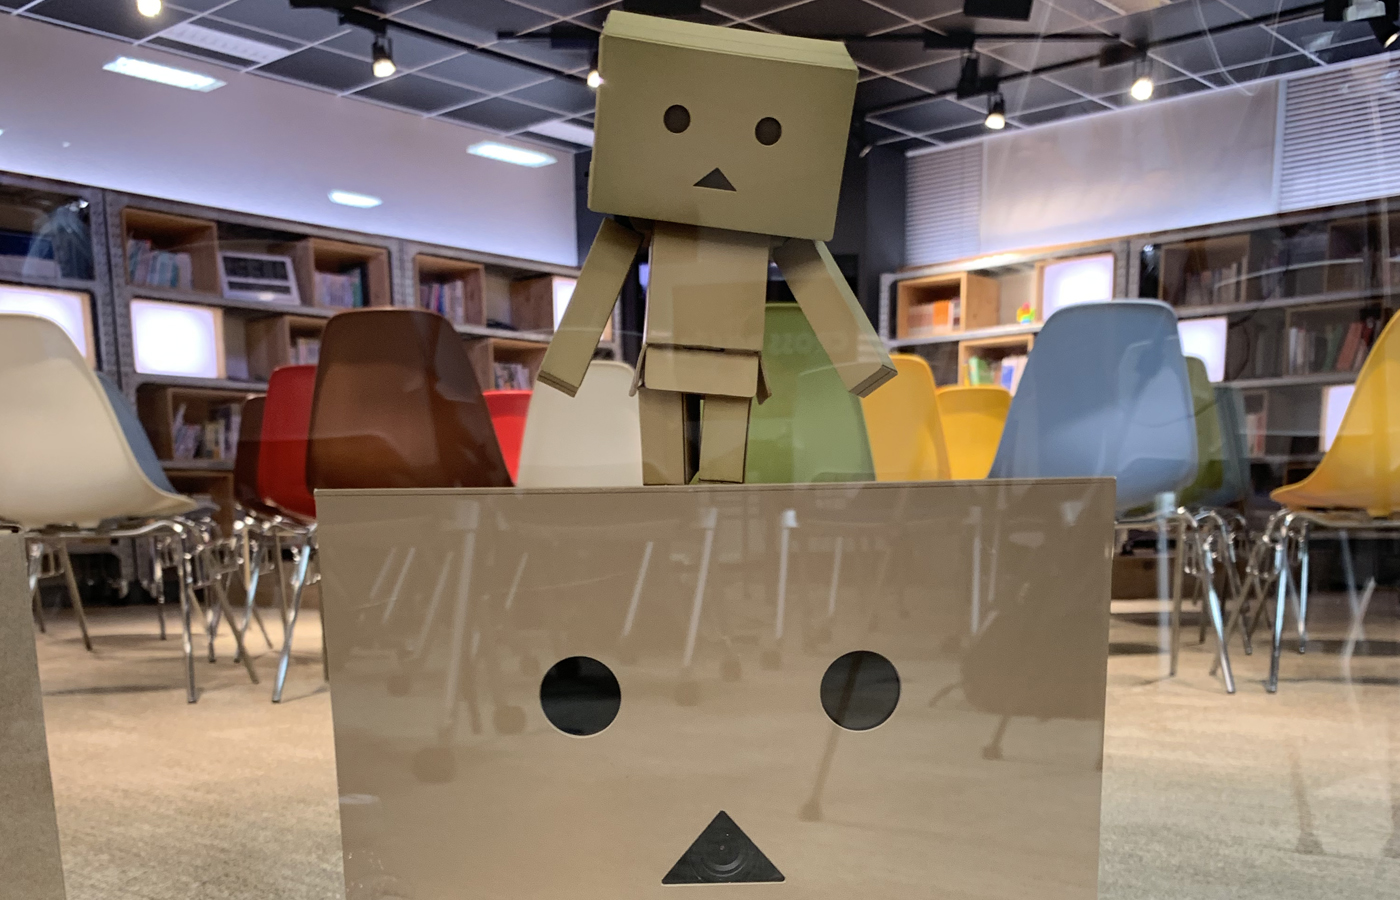 Cardboard robots enjoying the presentation